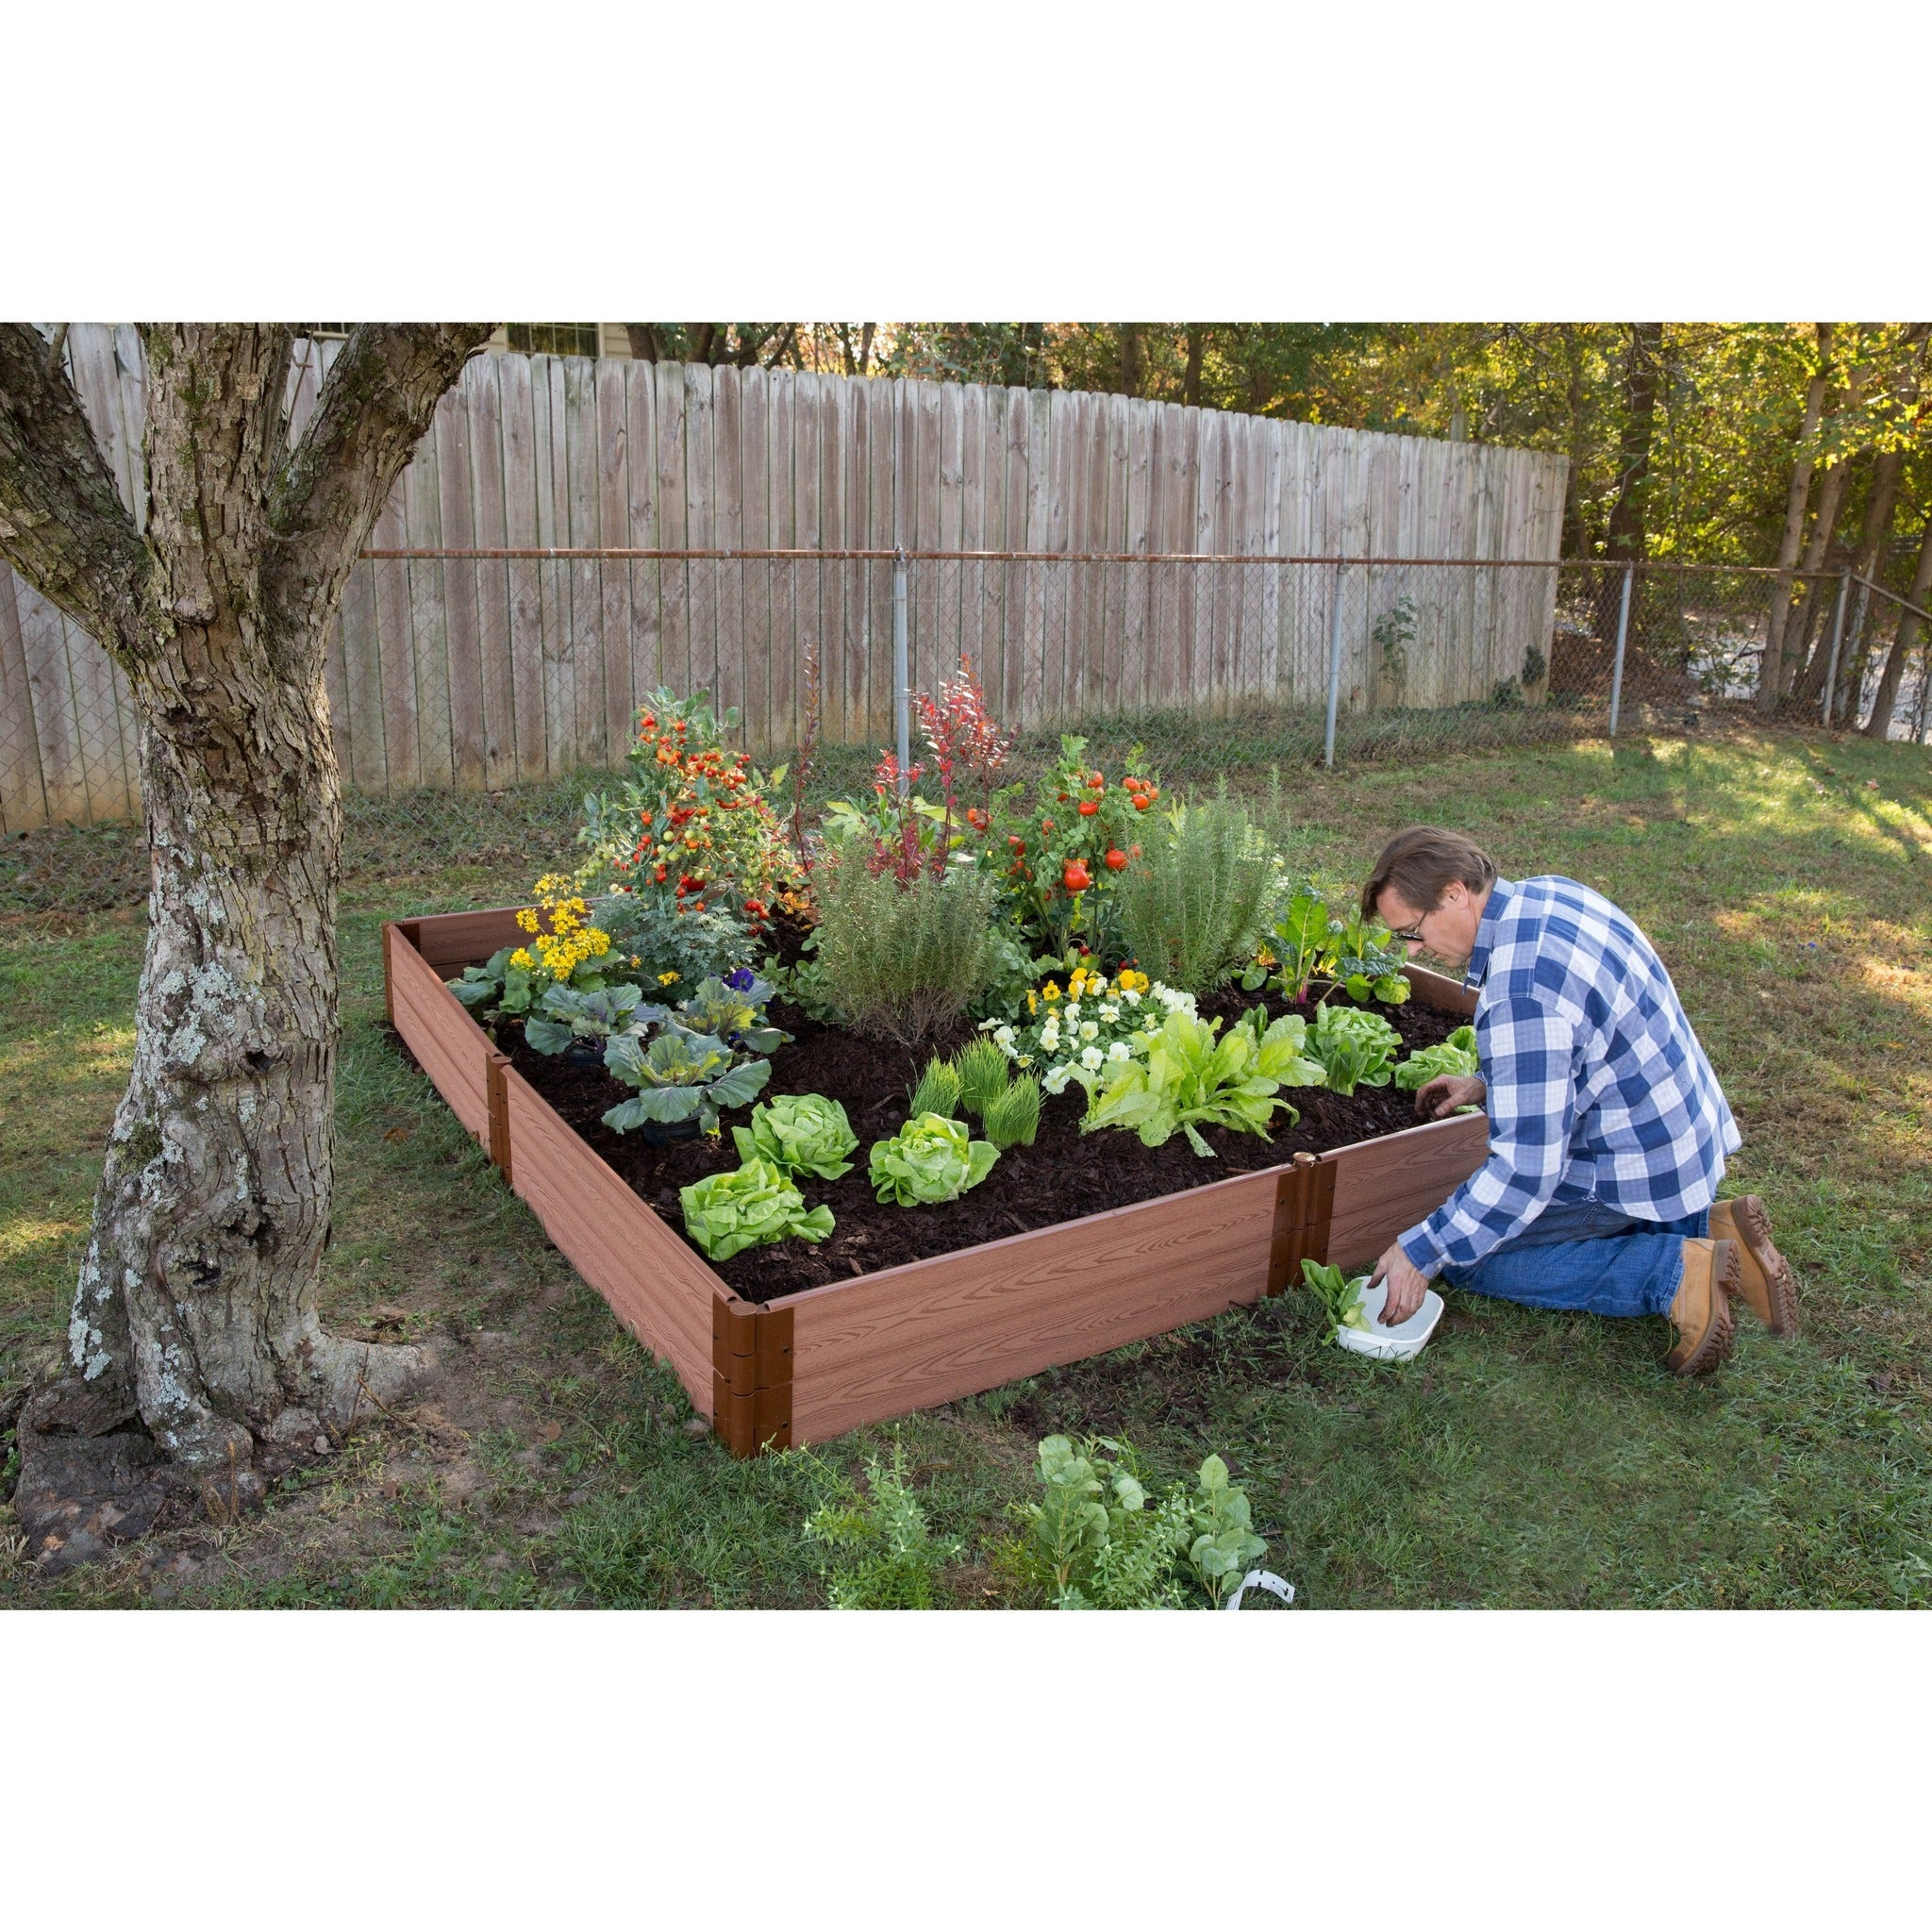 your raised a creating bed woodblocx beds in garden kits blog kit using pond and